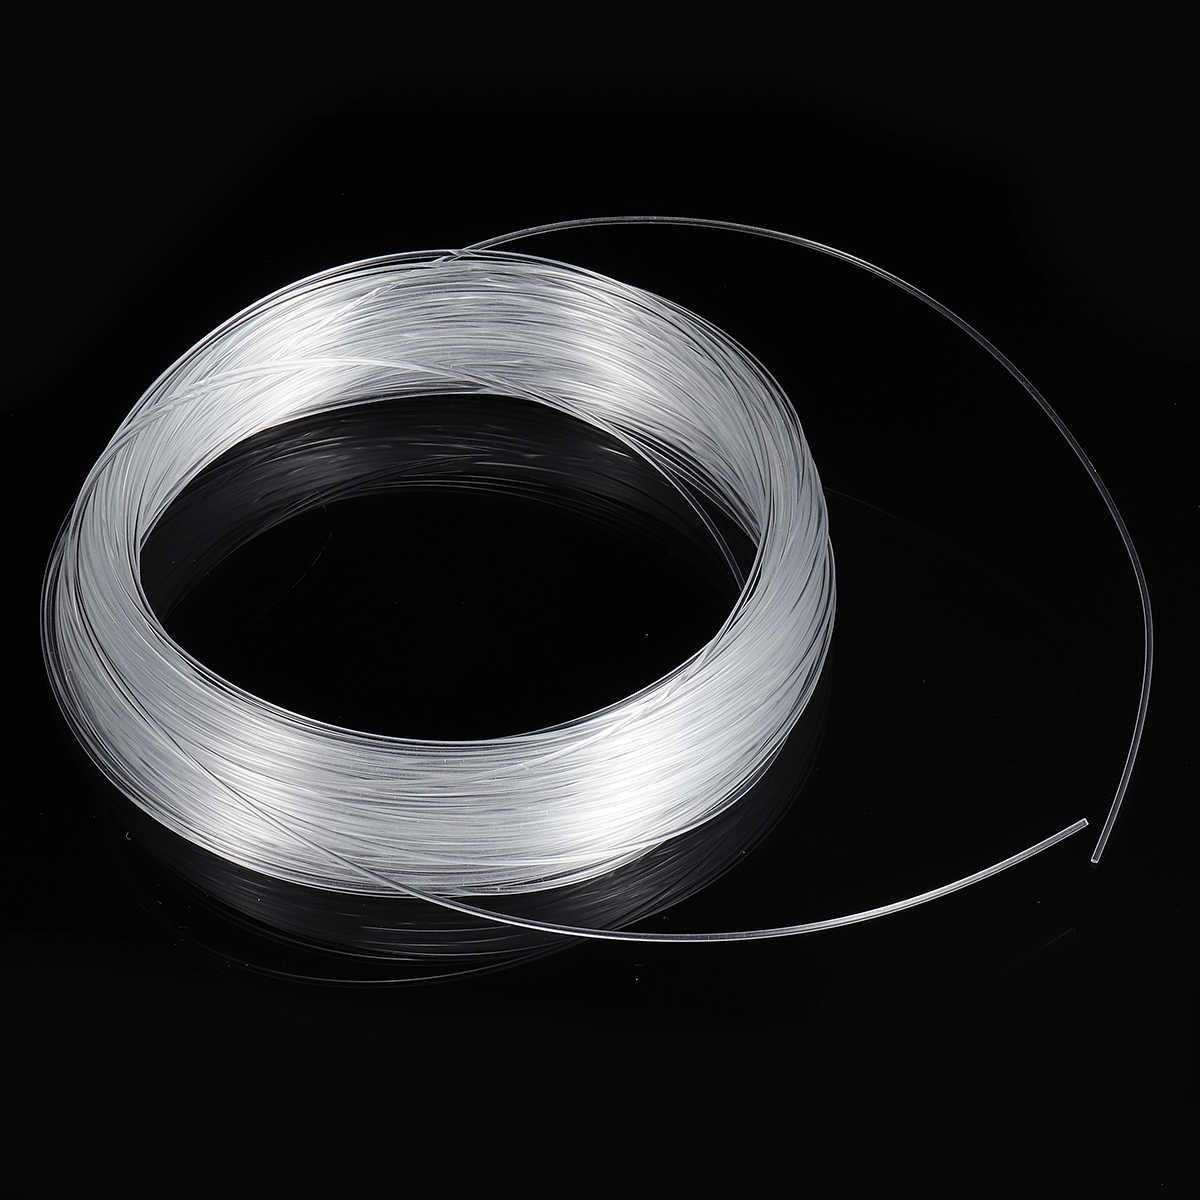 medium resolution of  clear pmma optic cable fiber light 50m 164ft end grow led light guide kit diy